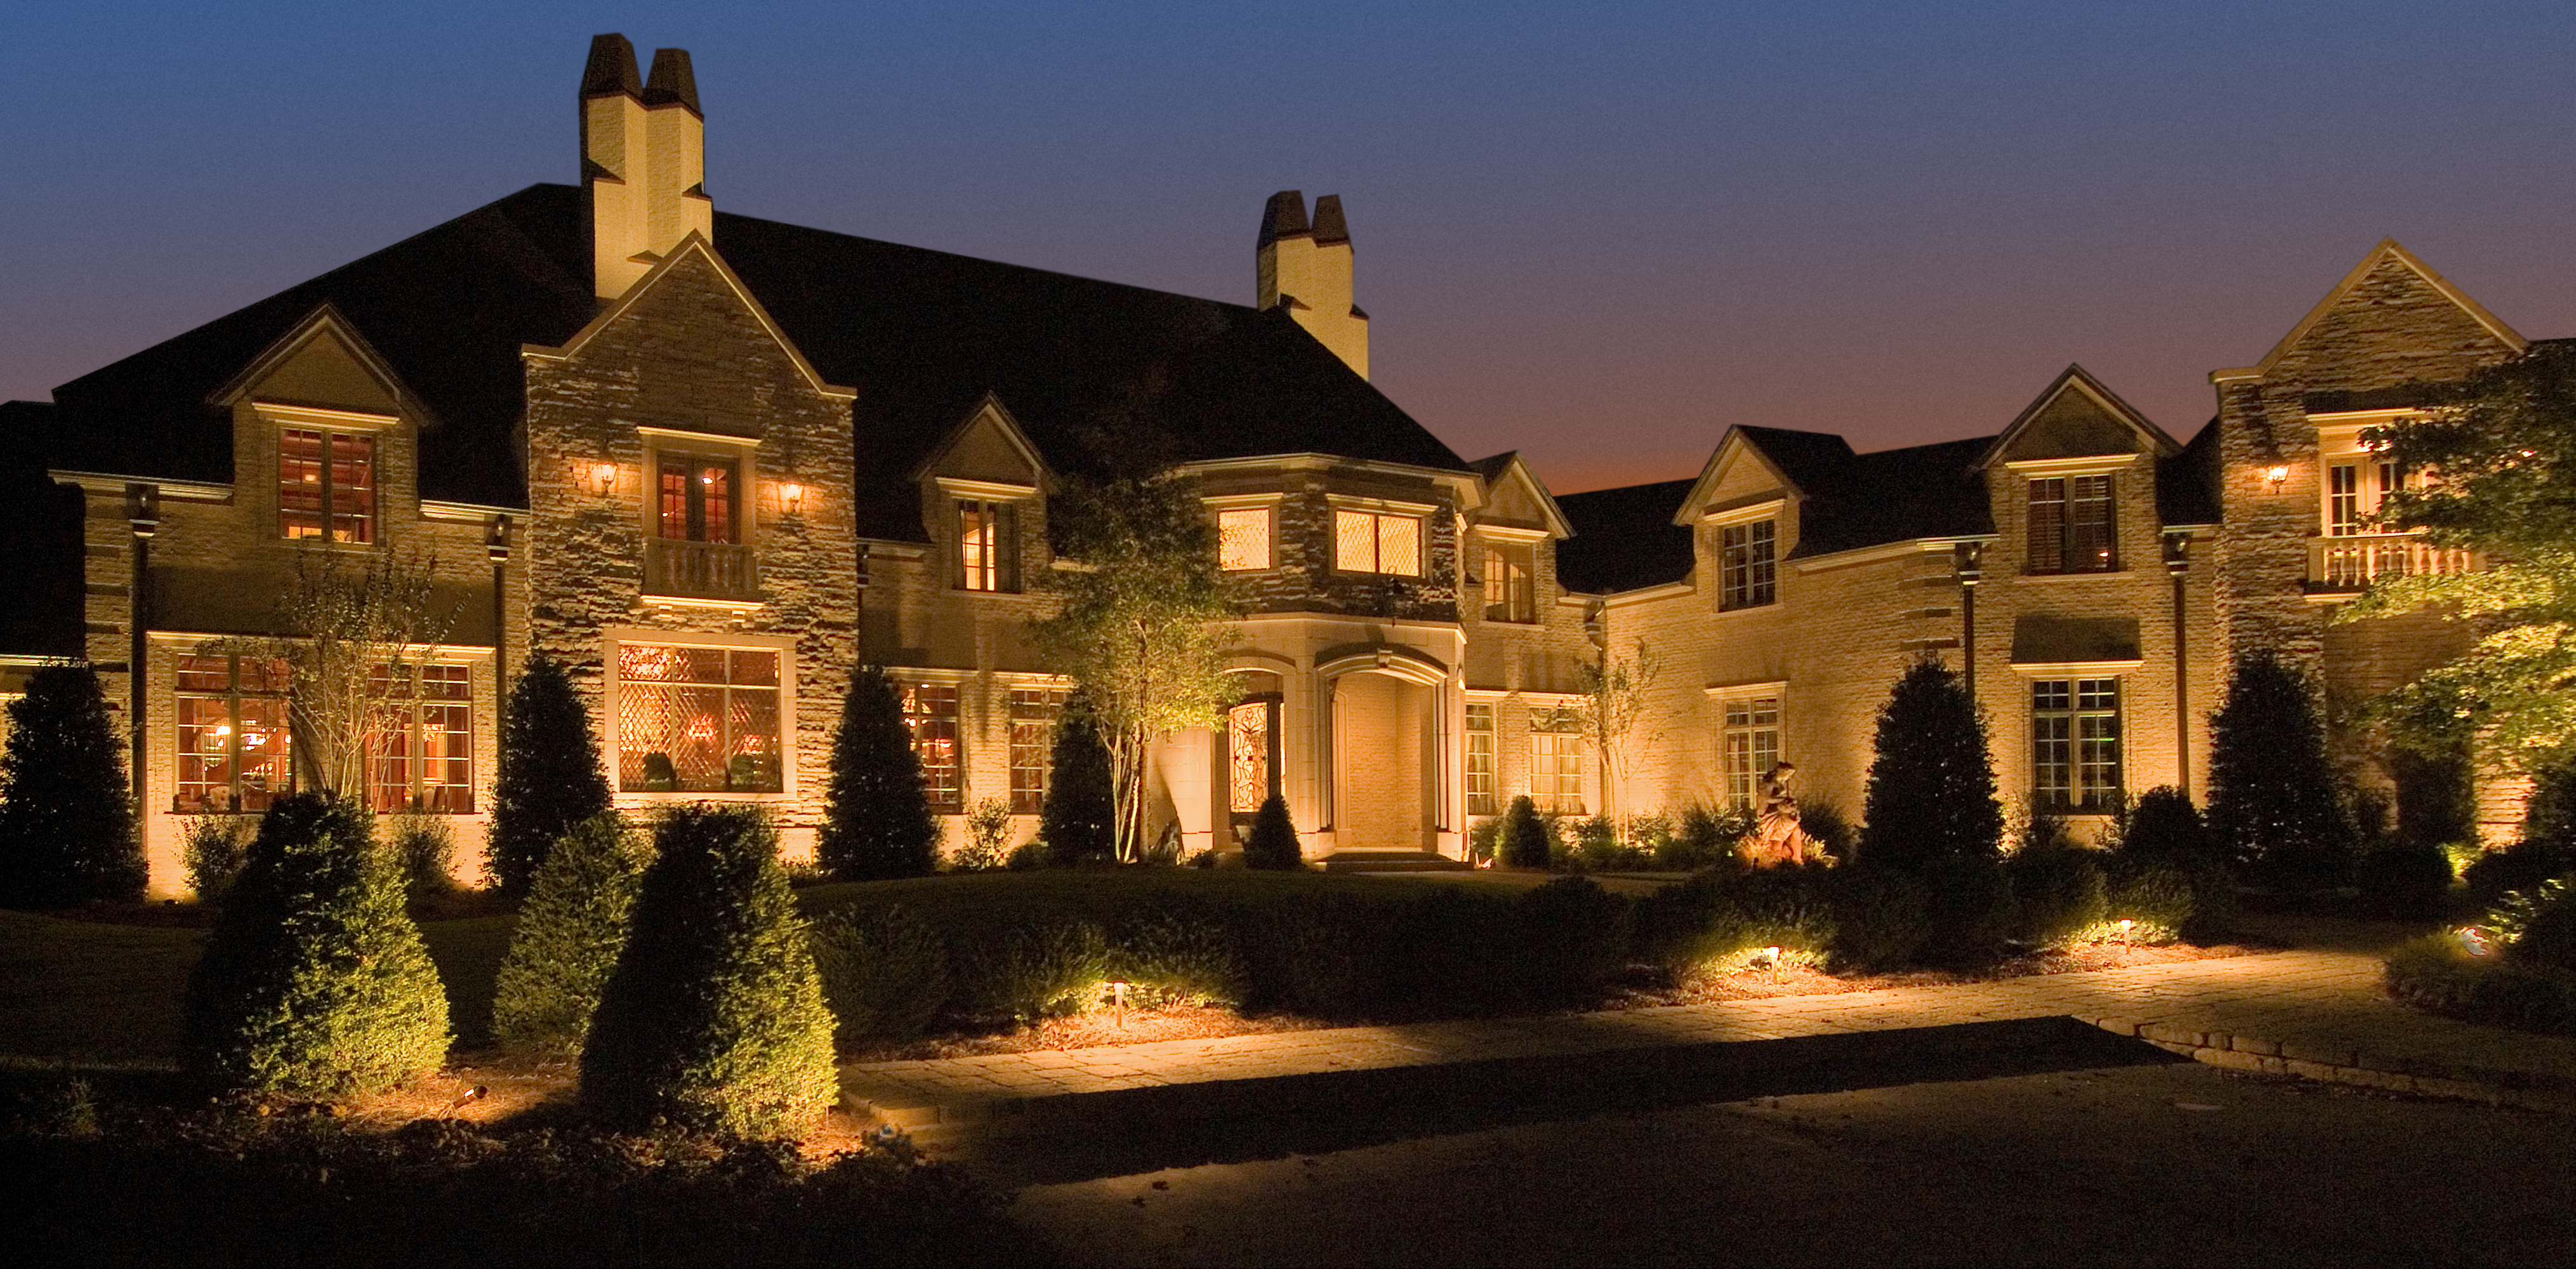 Architectural Lighting at its Finest. This stone mansion located in the suburbs of Birmingham, AL provided every imaginable architectural feature. The stone facade, the stately chimneys, and the entrance provided countless opportunities for accent lighting.